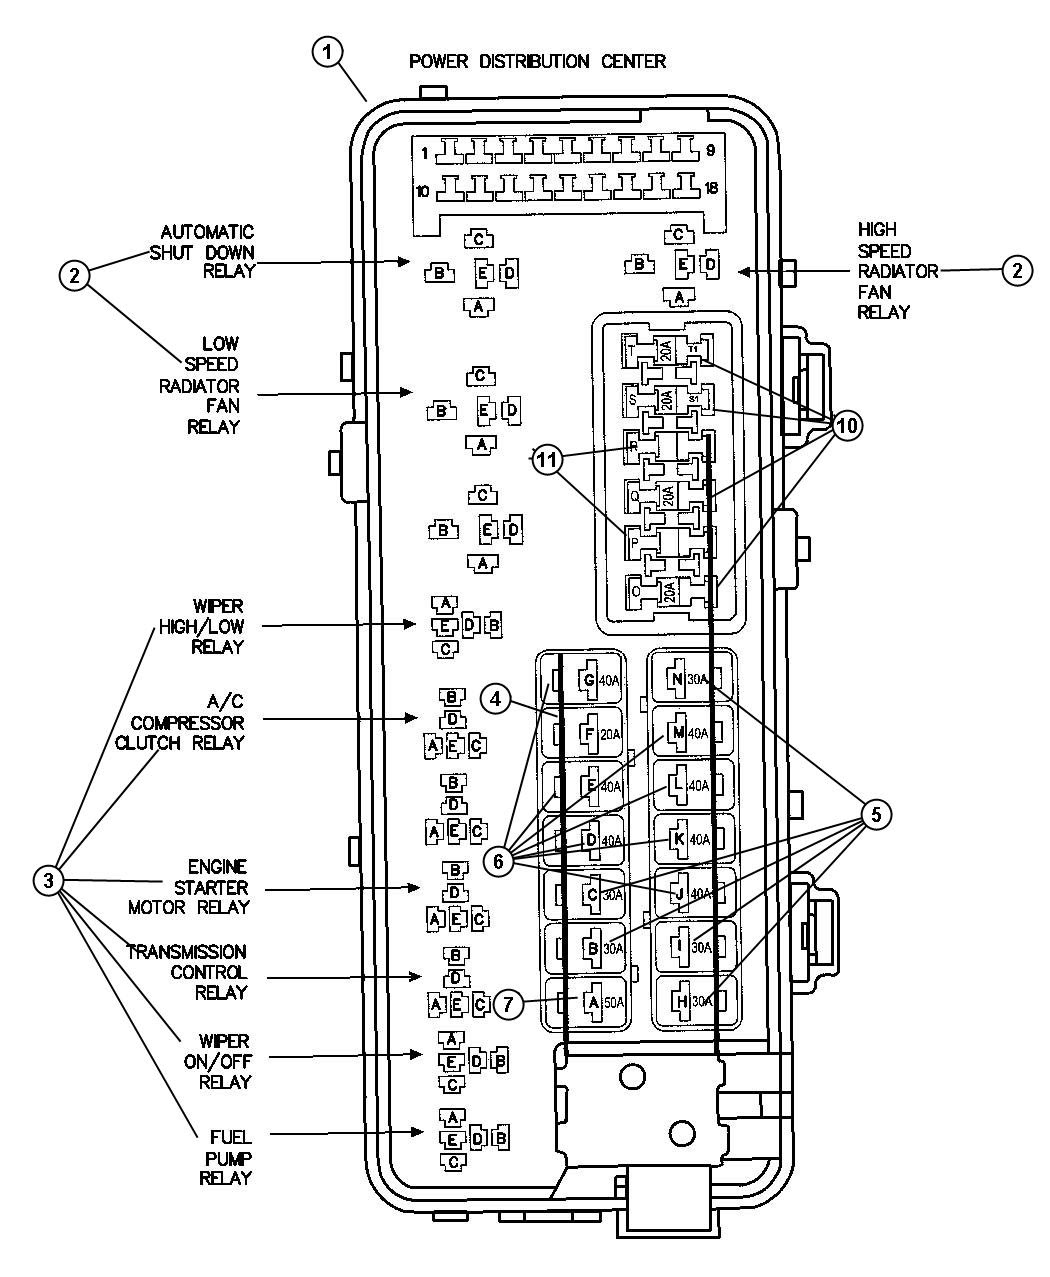 1995 Dodge Intrepid Engine Diagram Wiring Diagram Resource A Resource A Led Illumina It